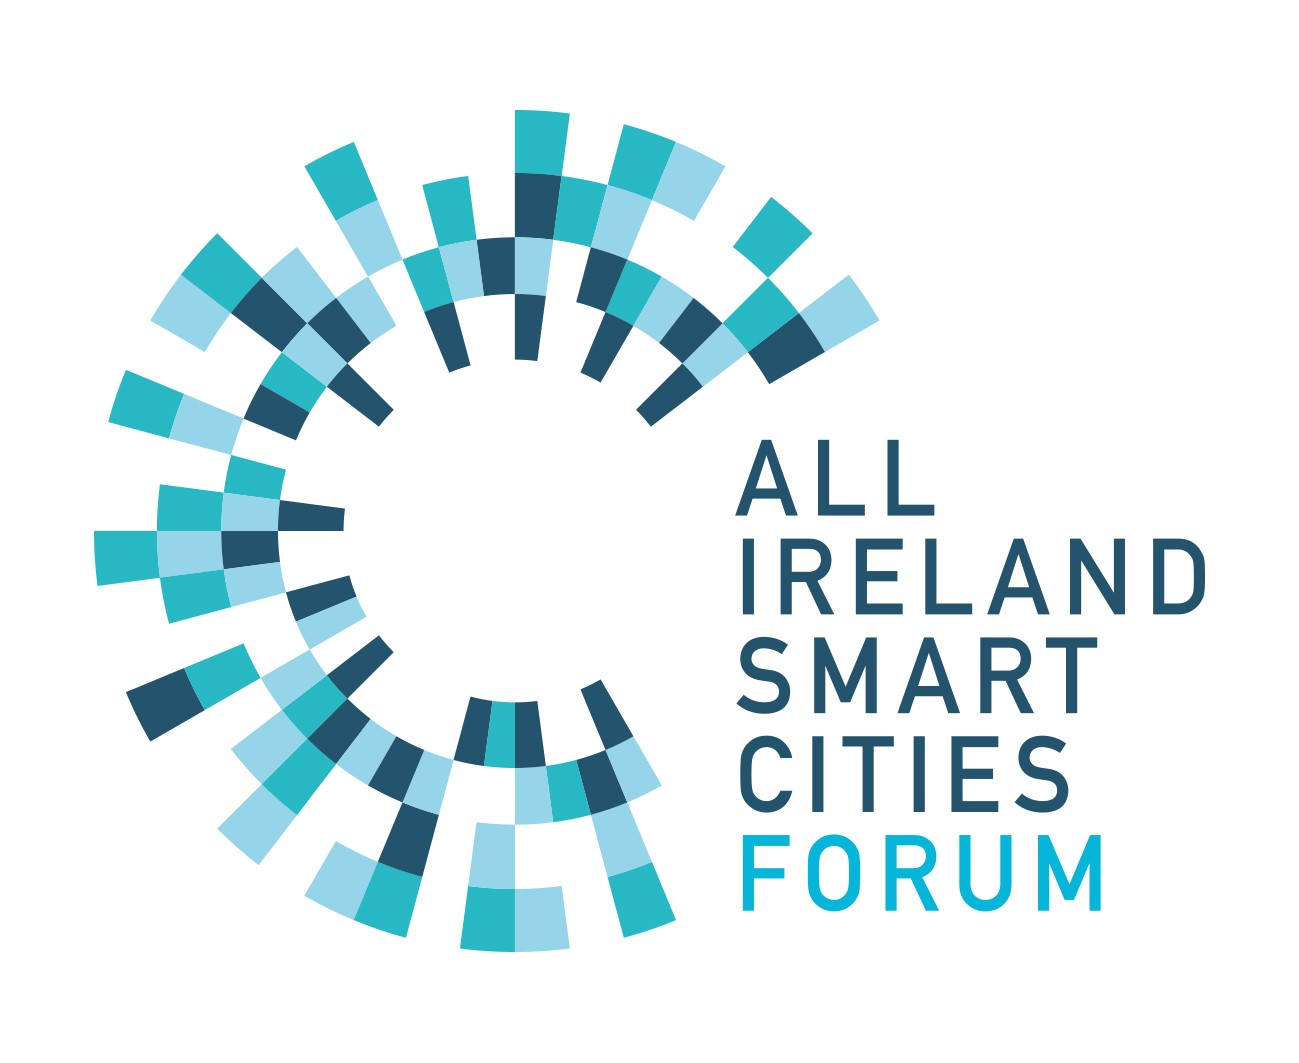 All Ireland Smart Cities Forum Annual Conference, 26 September 2018